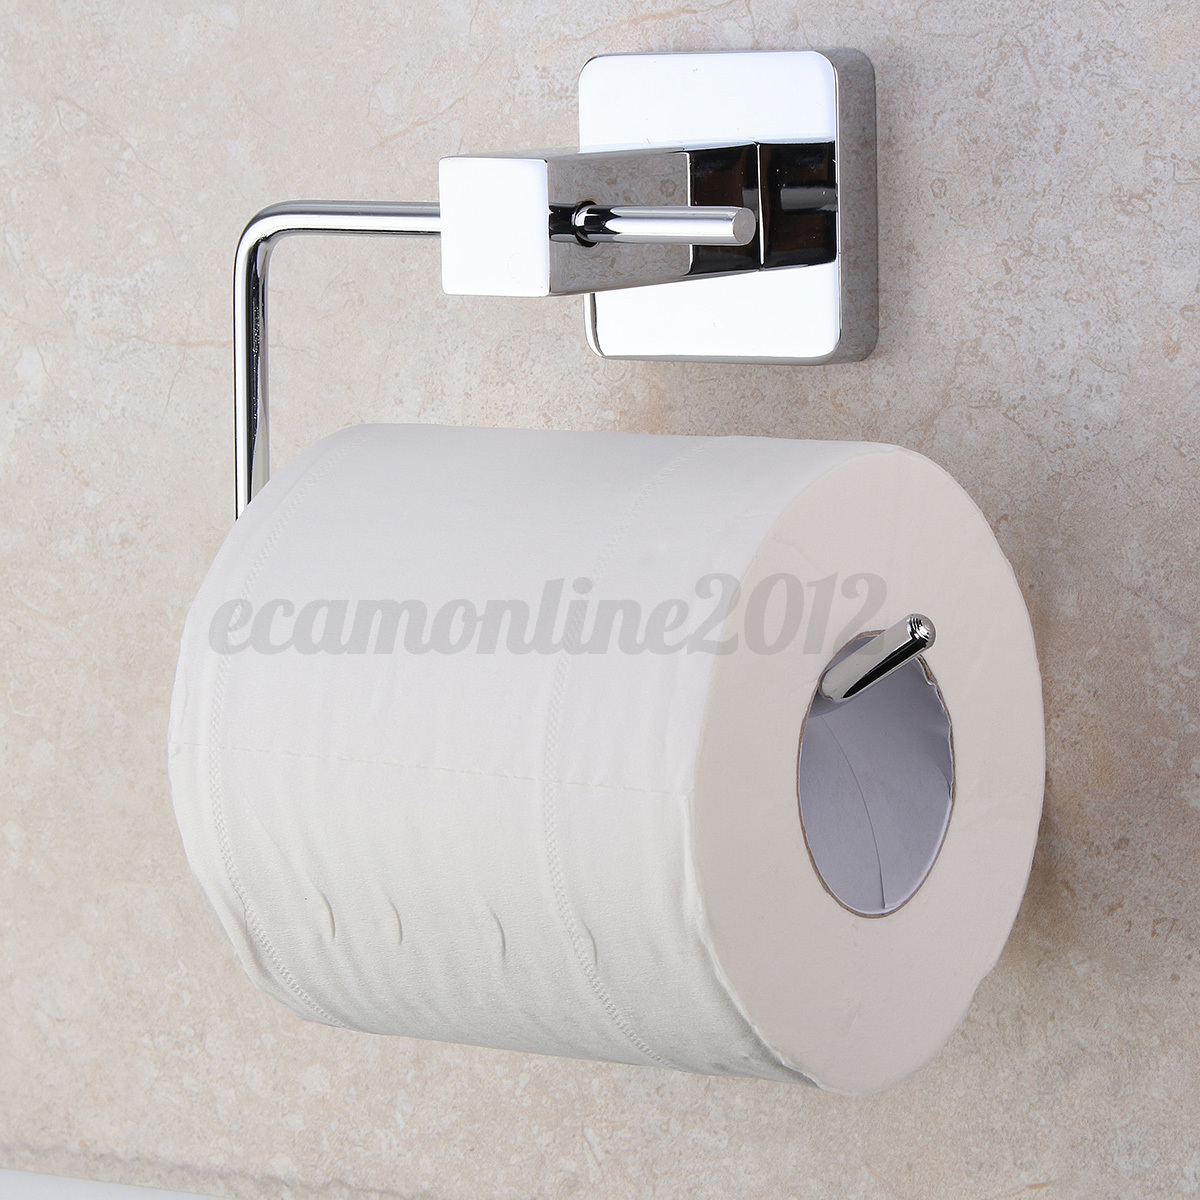 Stainless steel chrome bathroom toilet paper roll tissue holder bar wall mounted - Tissue holder bathroom ...